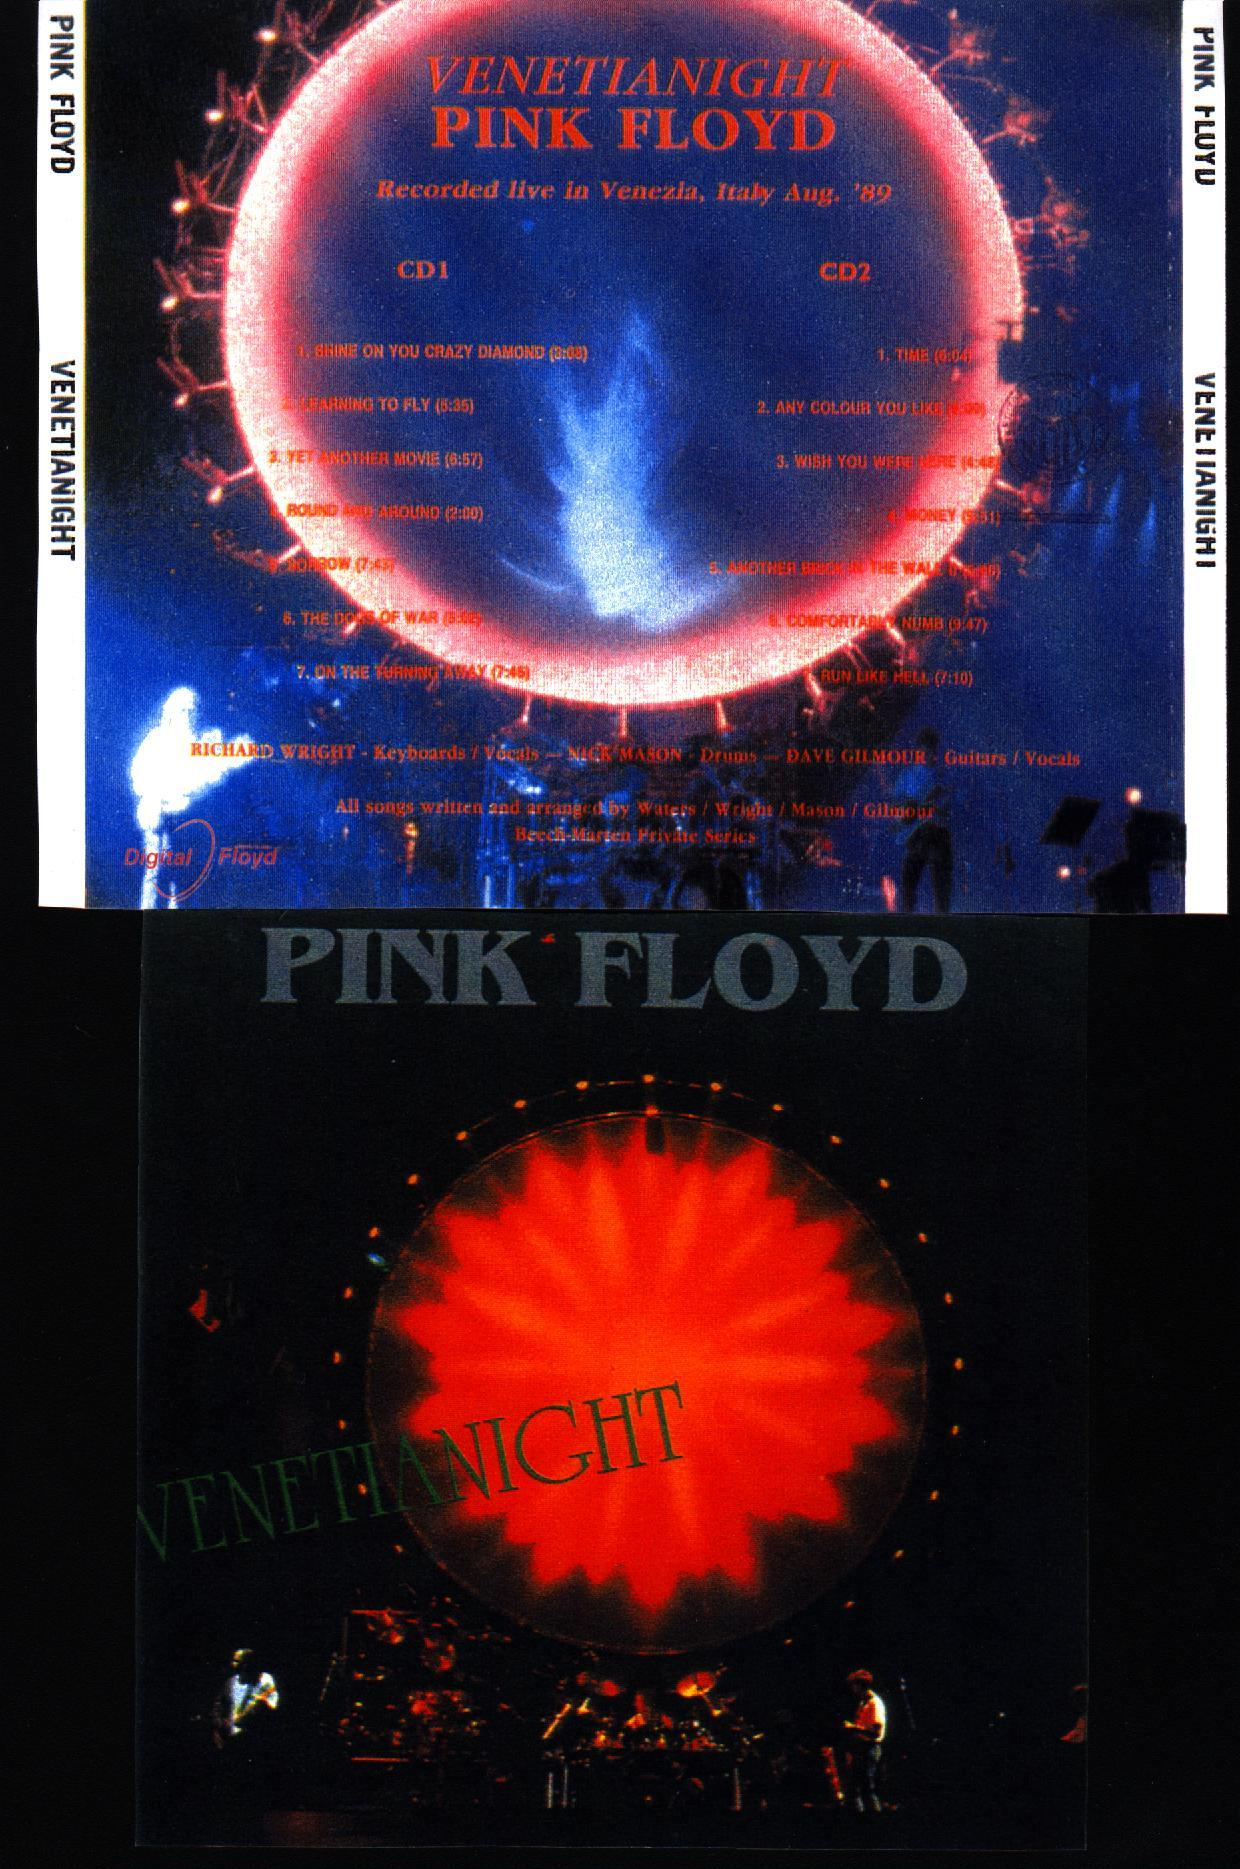 Pink Floyd - Venetia Night (disc 1)